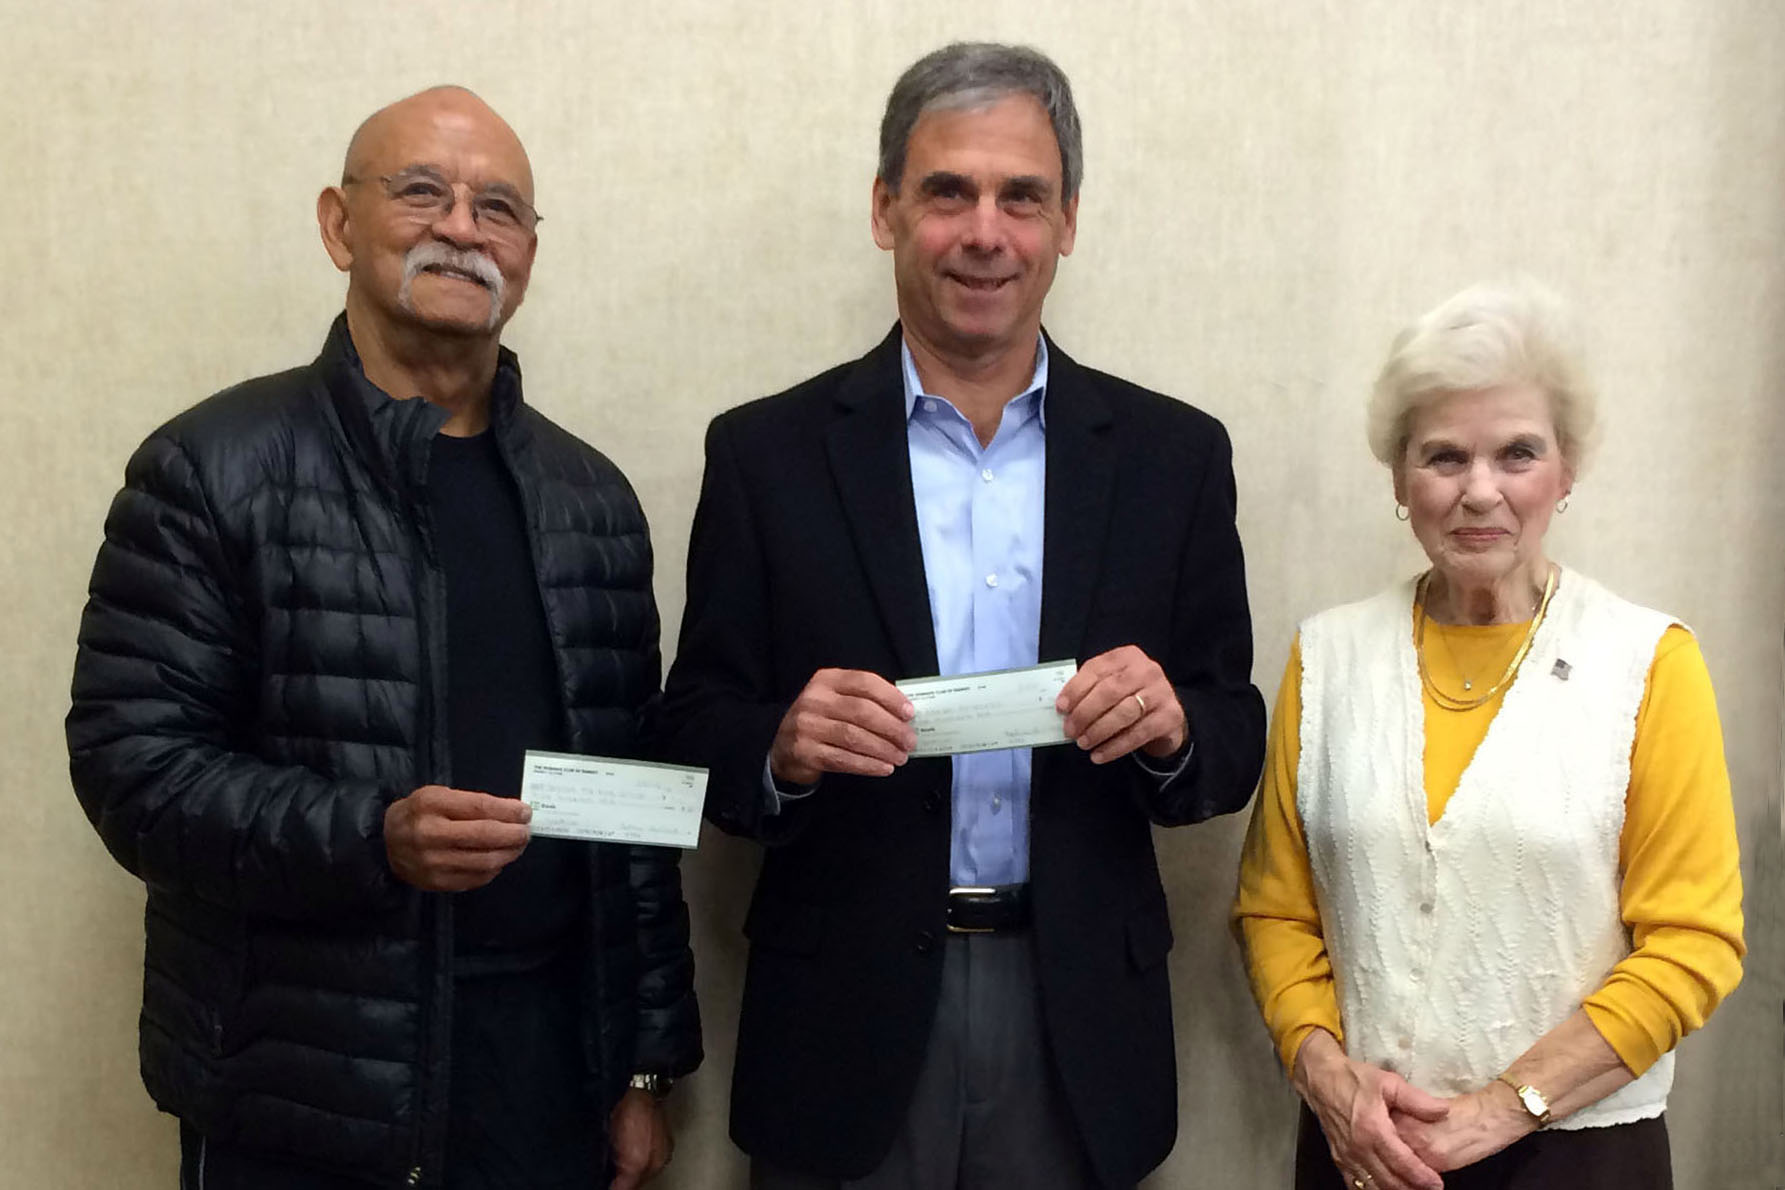 In November, Jim James and Harris Recht accepted $500 checks from Marjorie Detweiler to help support the Center for Food Action and Ramsey Responds.